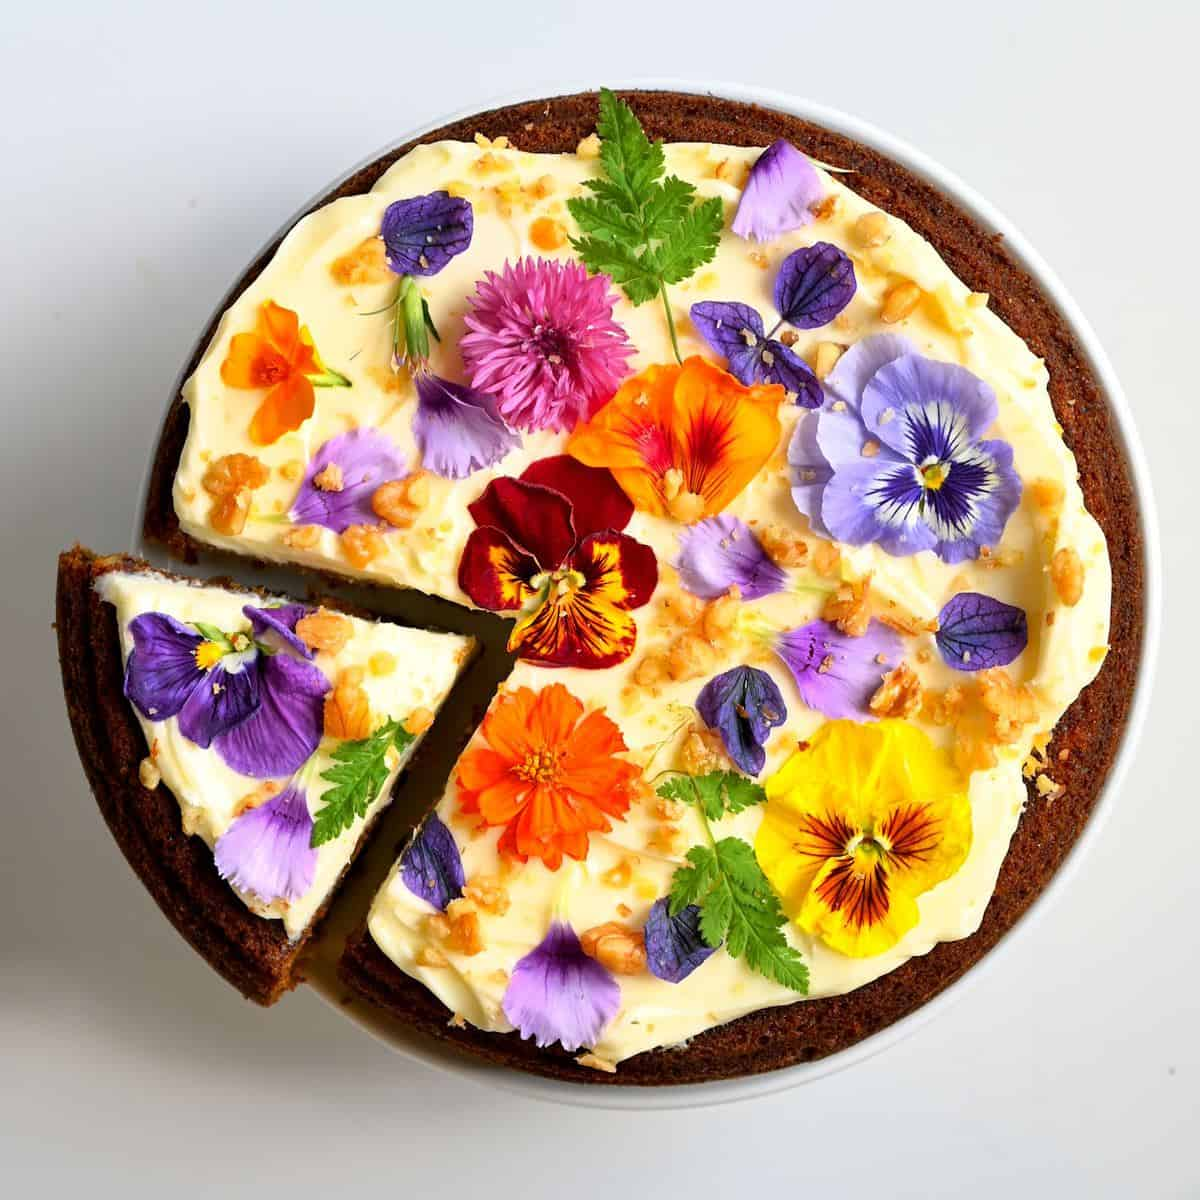 Carrot Cake with frosting and edible flowers and a cut slice